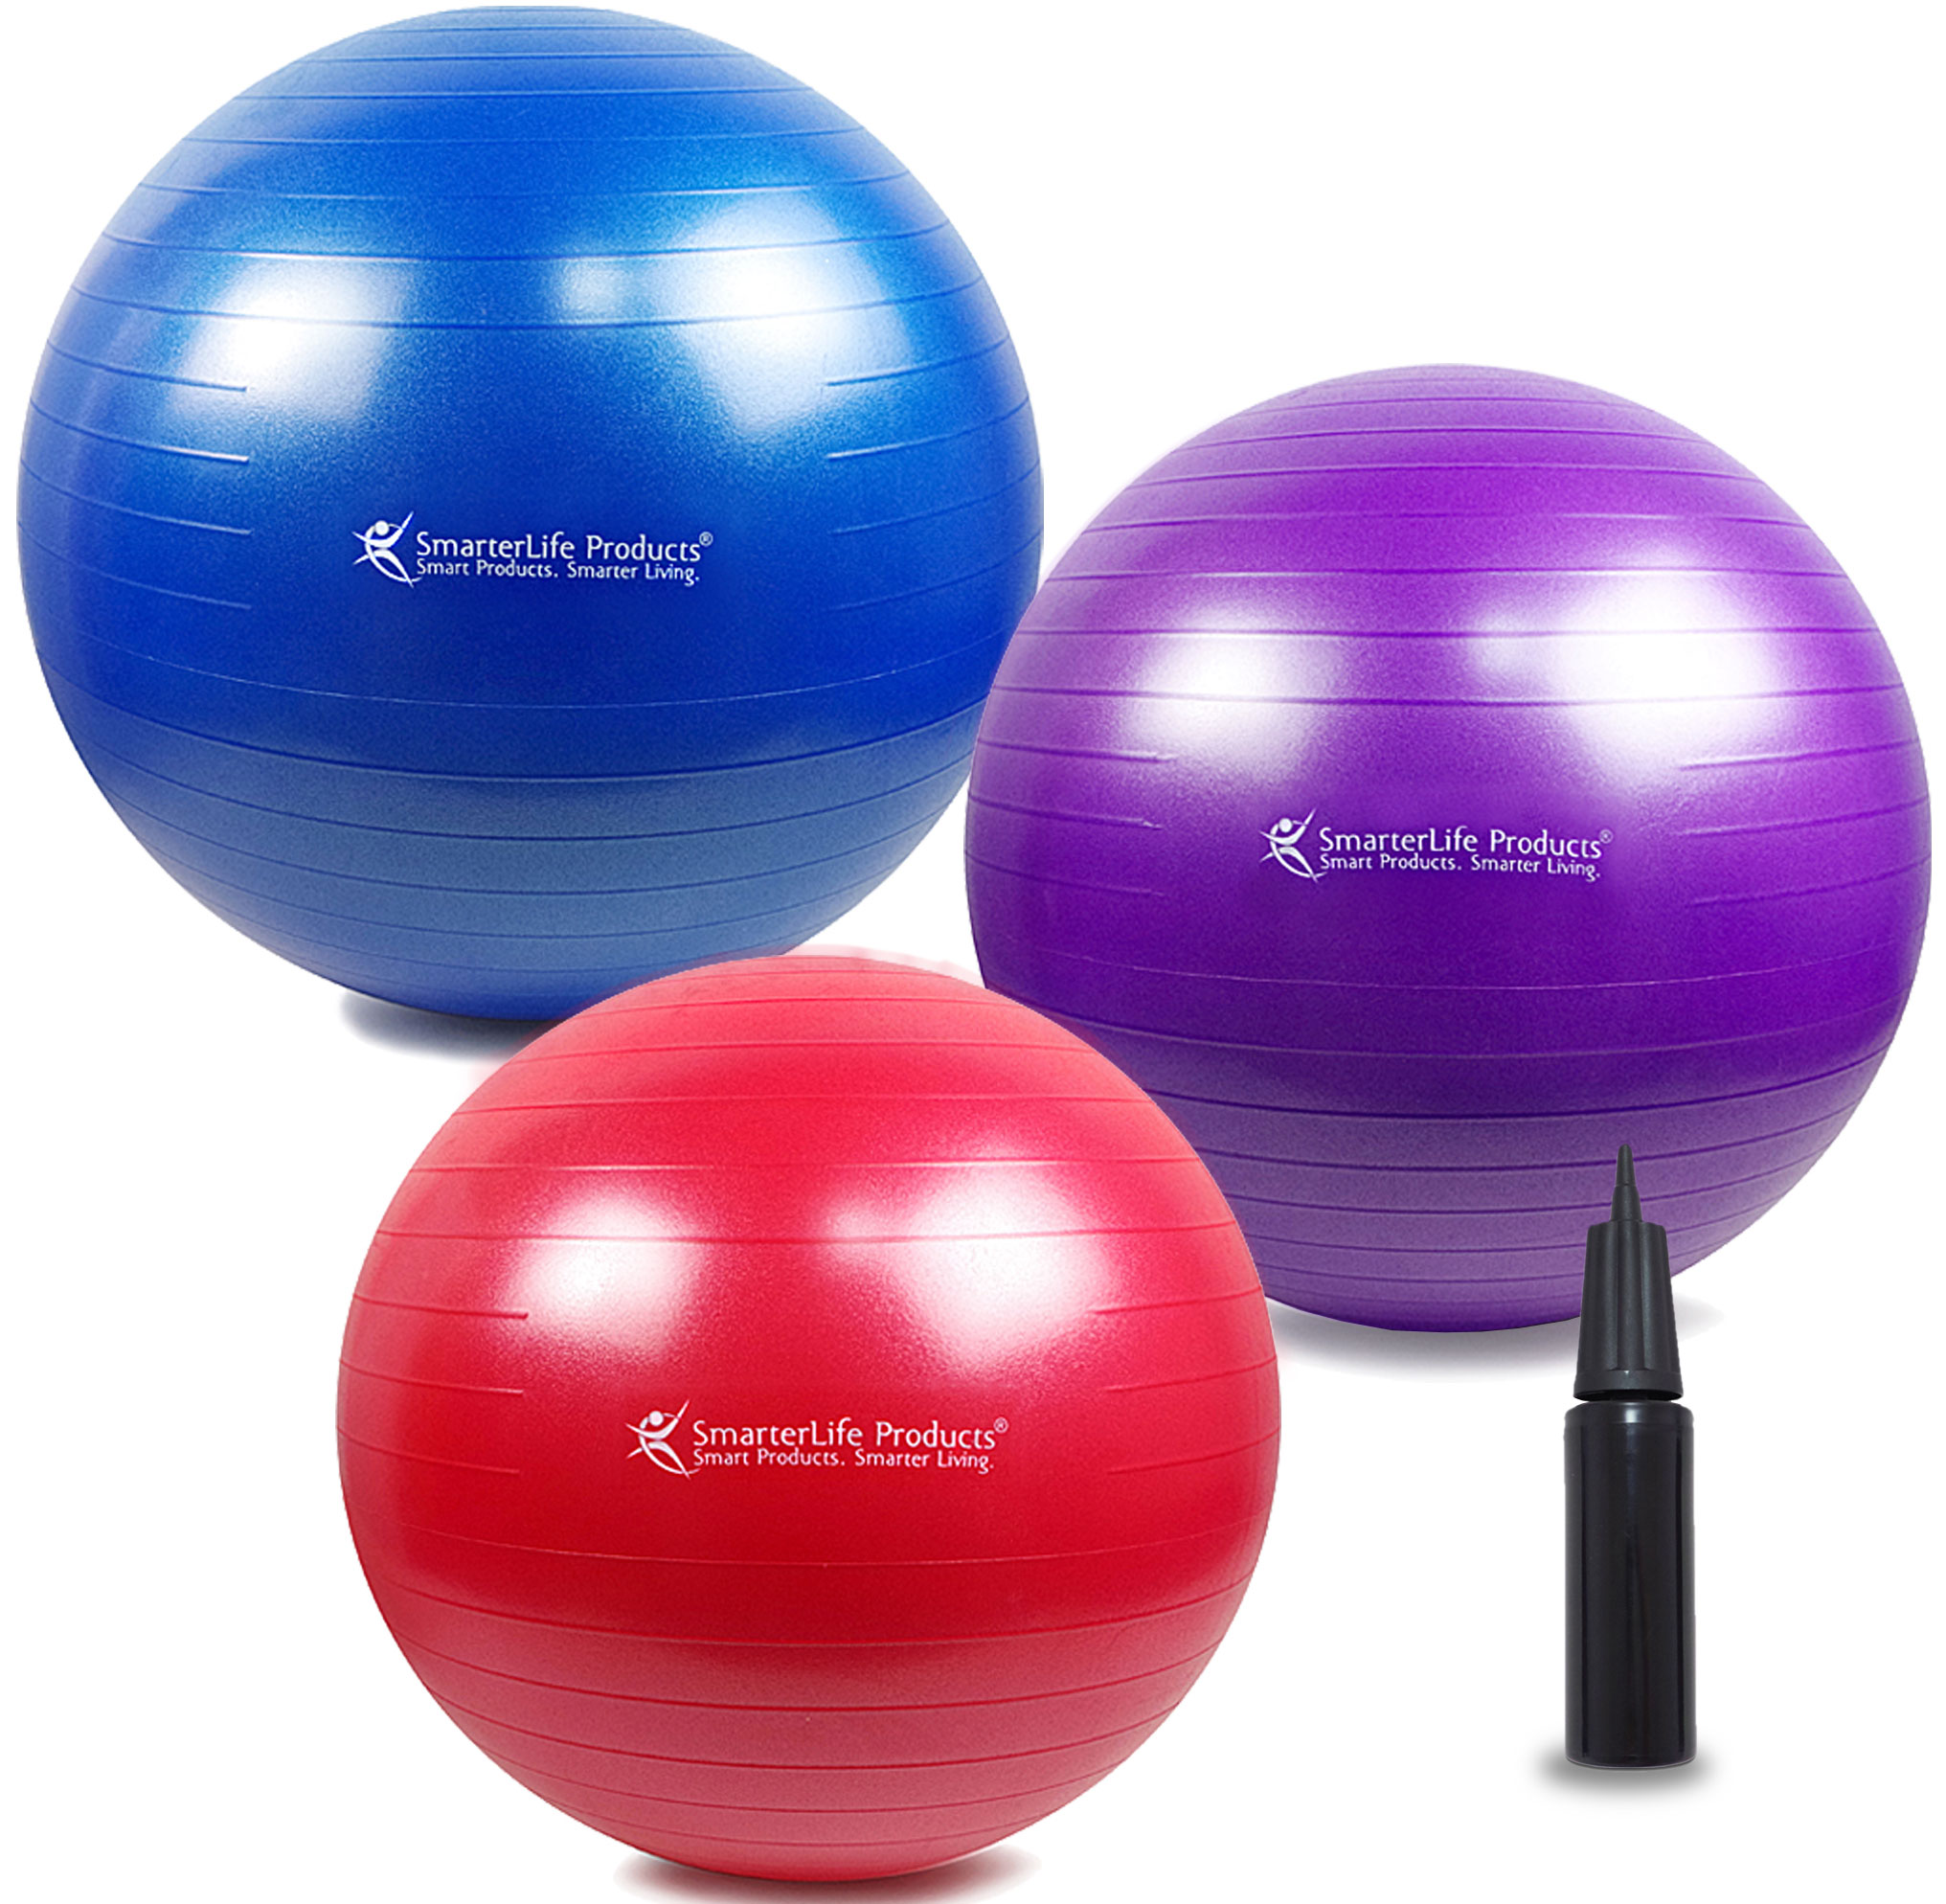 fitness ball purple 30in75cm diameter includes 1 ball 1